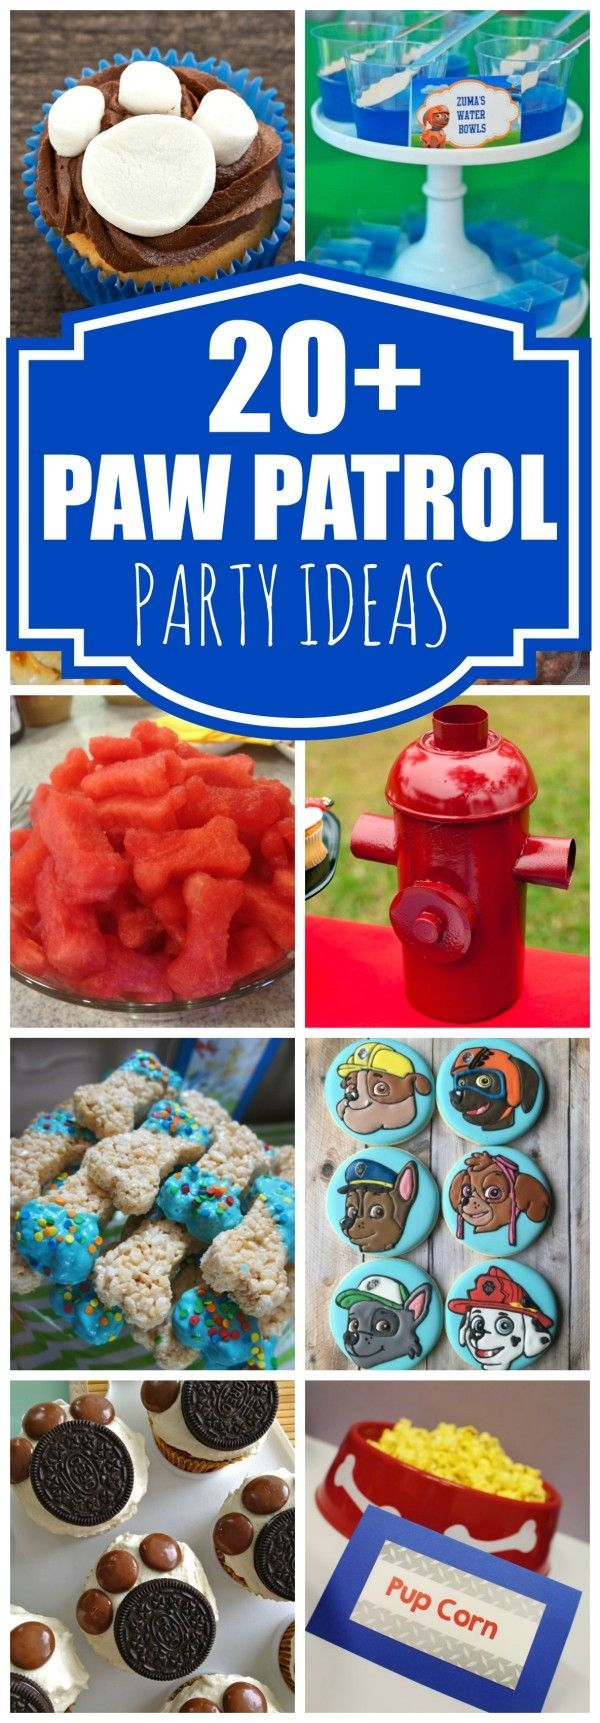 20 Awesome Paw Patrol Party Ideas on prettymyparty.com.                                                                                                                                                                                 More